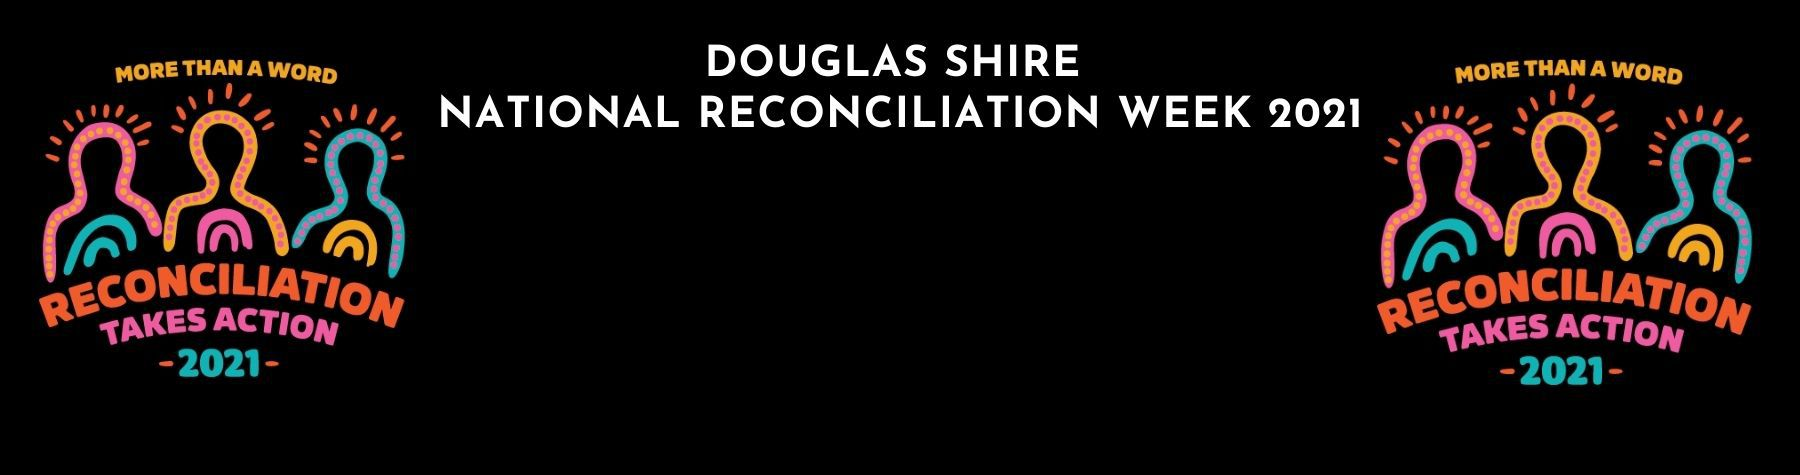 Douglas takes action for National Reconciliation Week